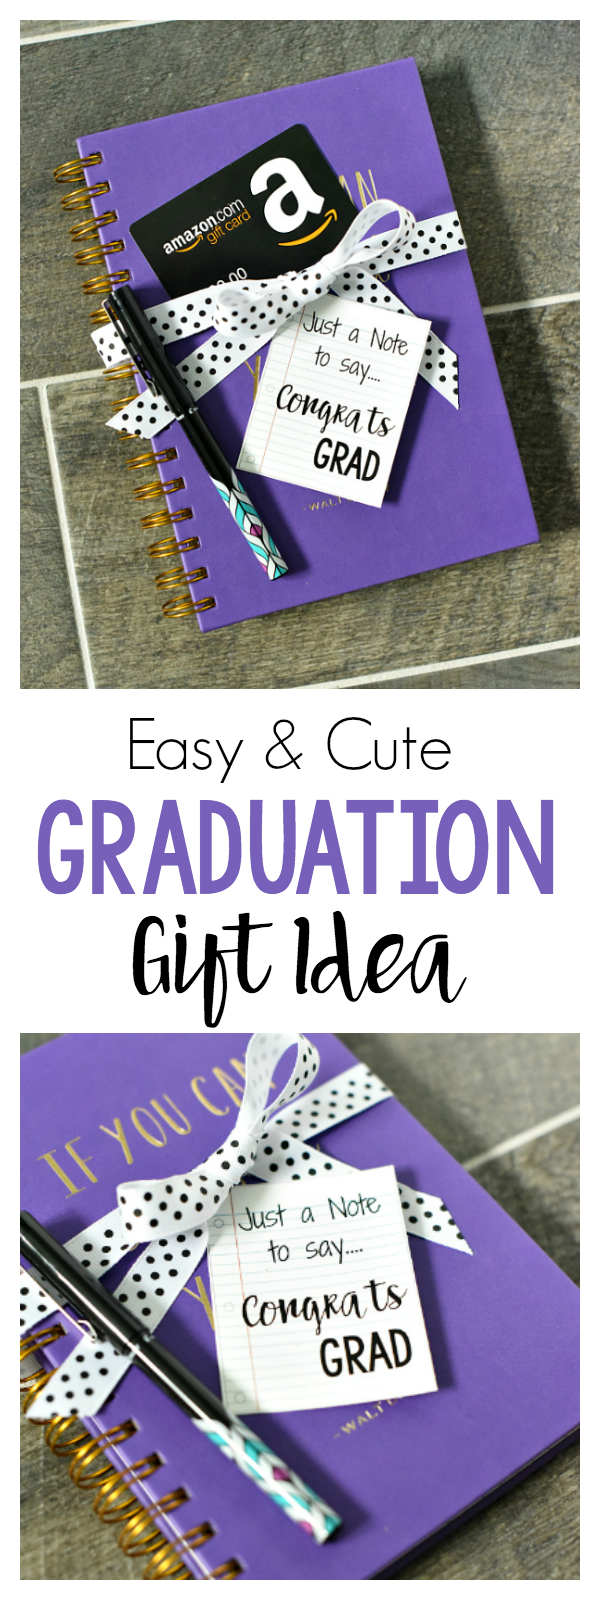 Just a Note to Say, Congrats Grad! Easy Graduation Gift Idea